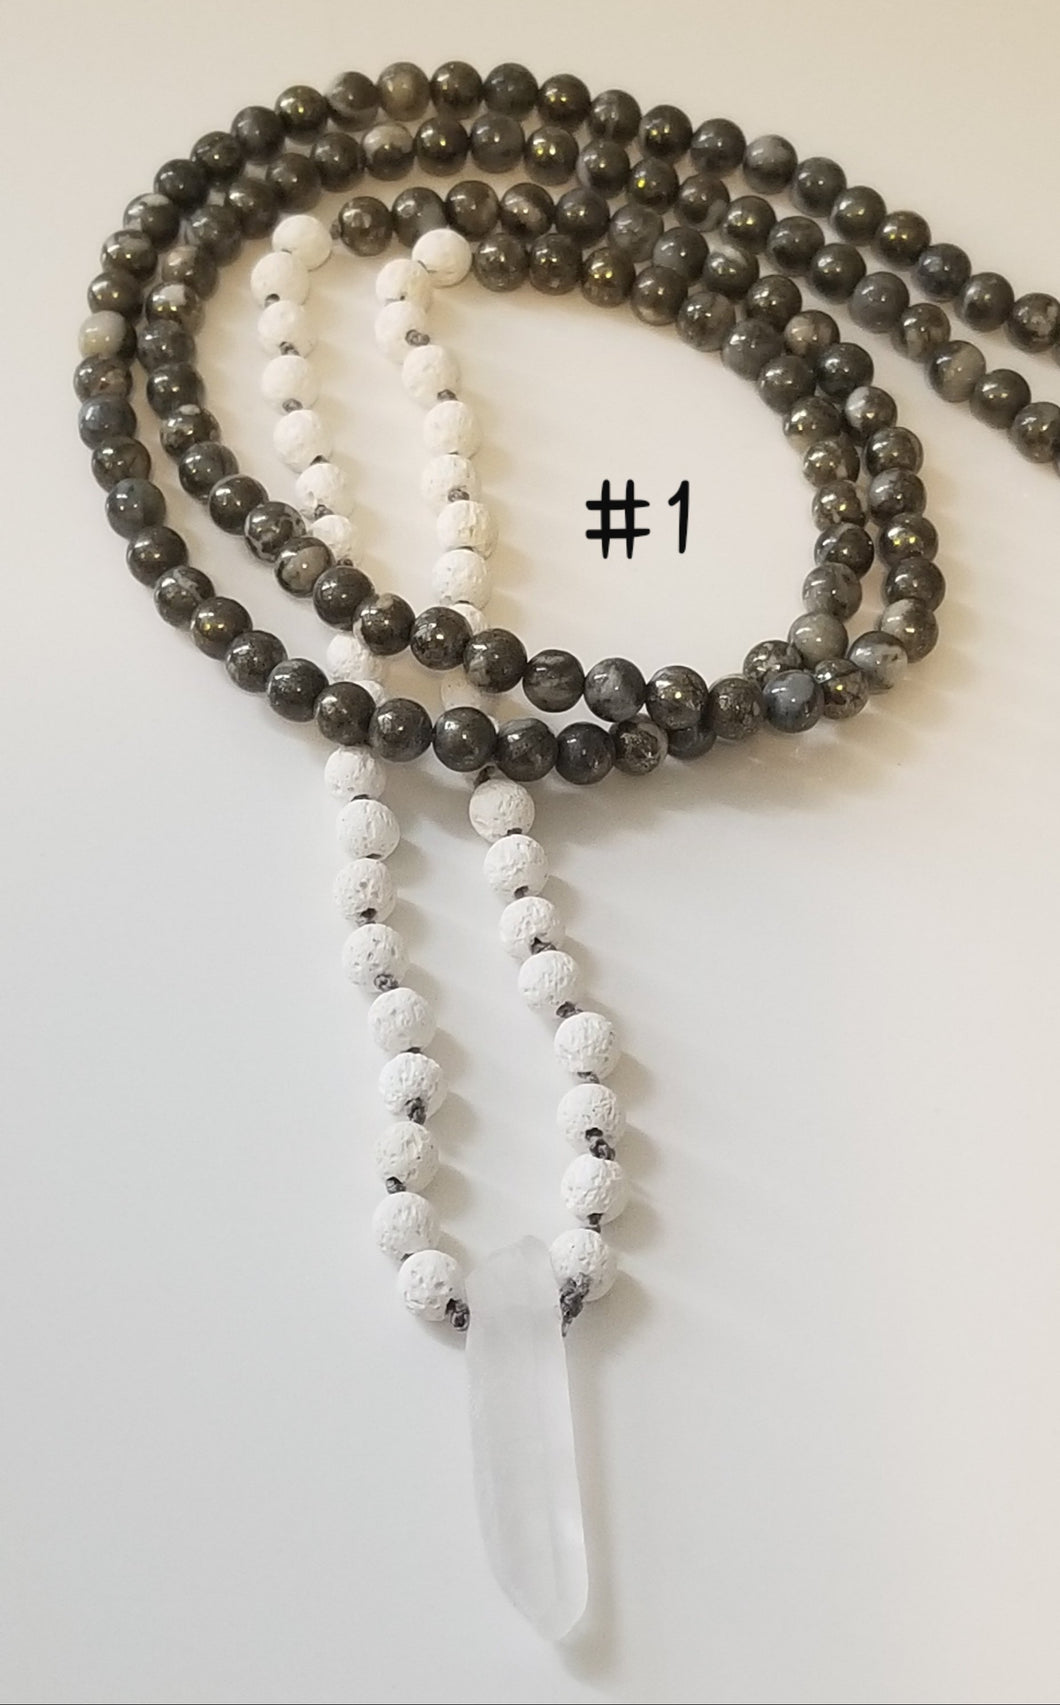 6mm Gemstone Mala's